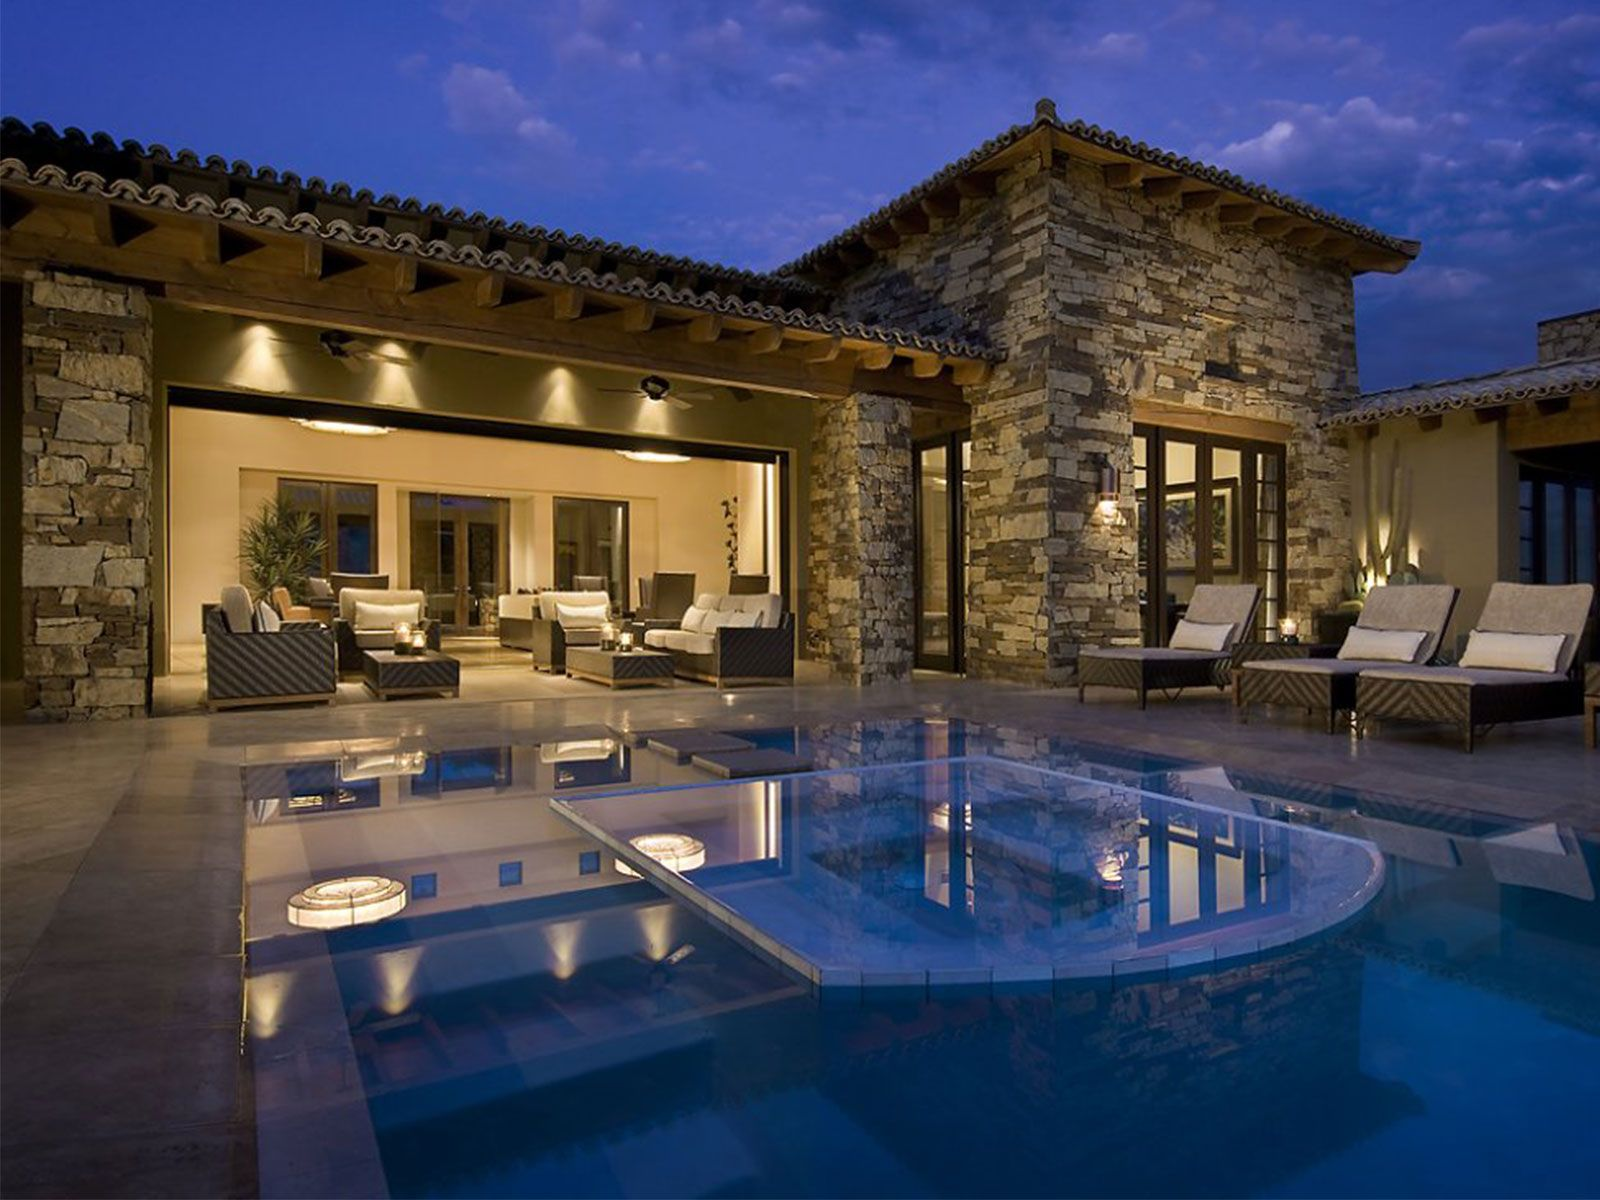 Cool backyard with pool design interior design architecture and - Swiming Pools Interior Design Shew Waplag Pool Landscape Swiming Designs Home Decorating Photo With Architectural Pool Designs Also Pool And Swimming Pool